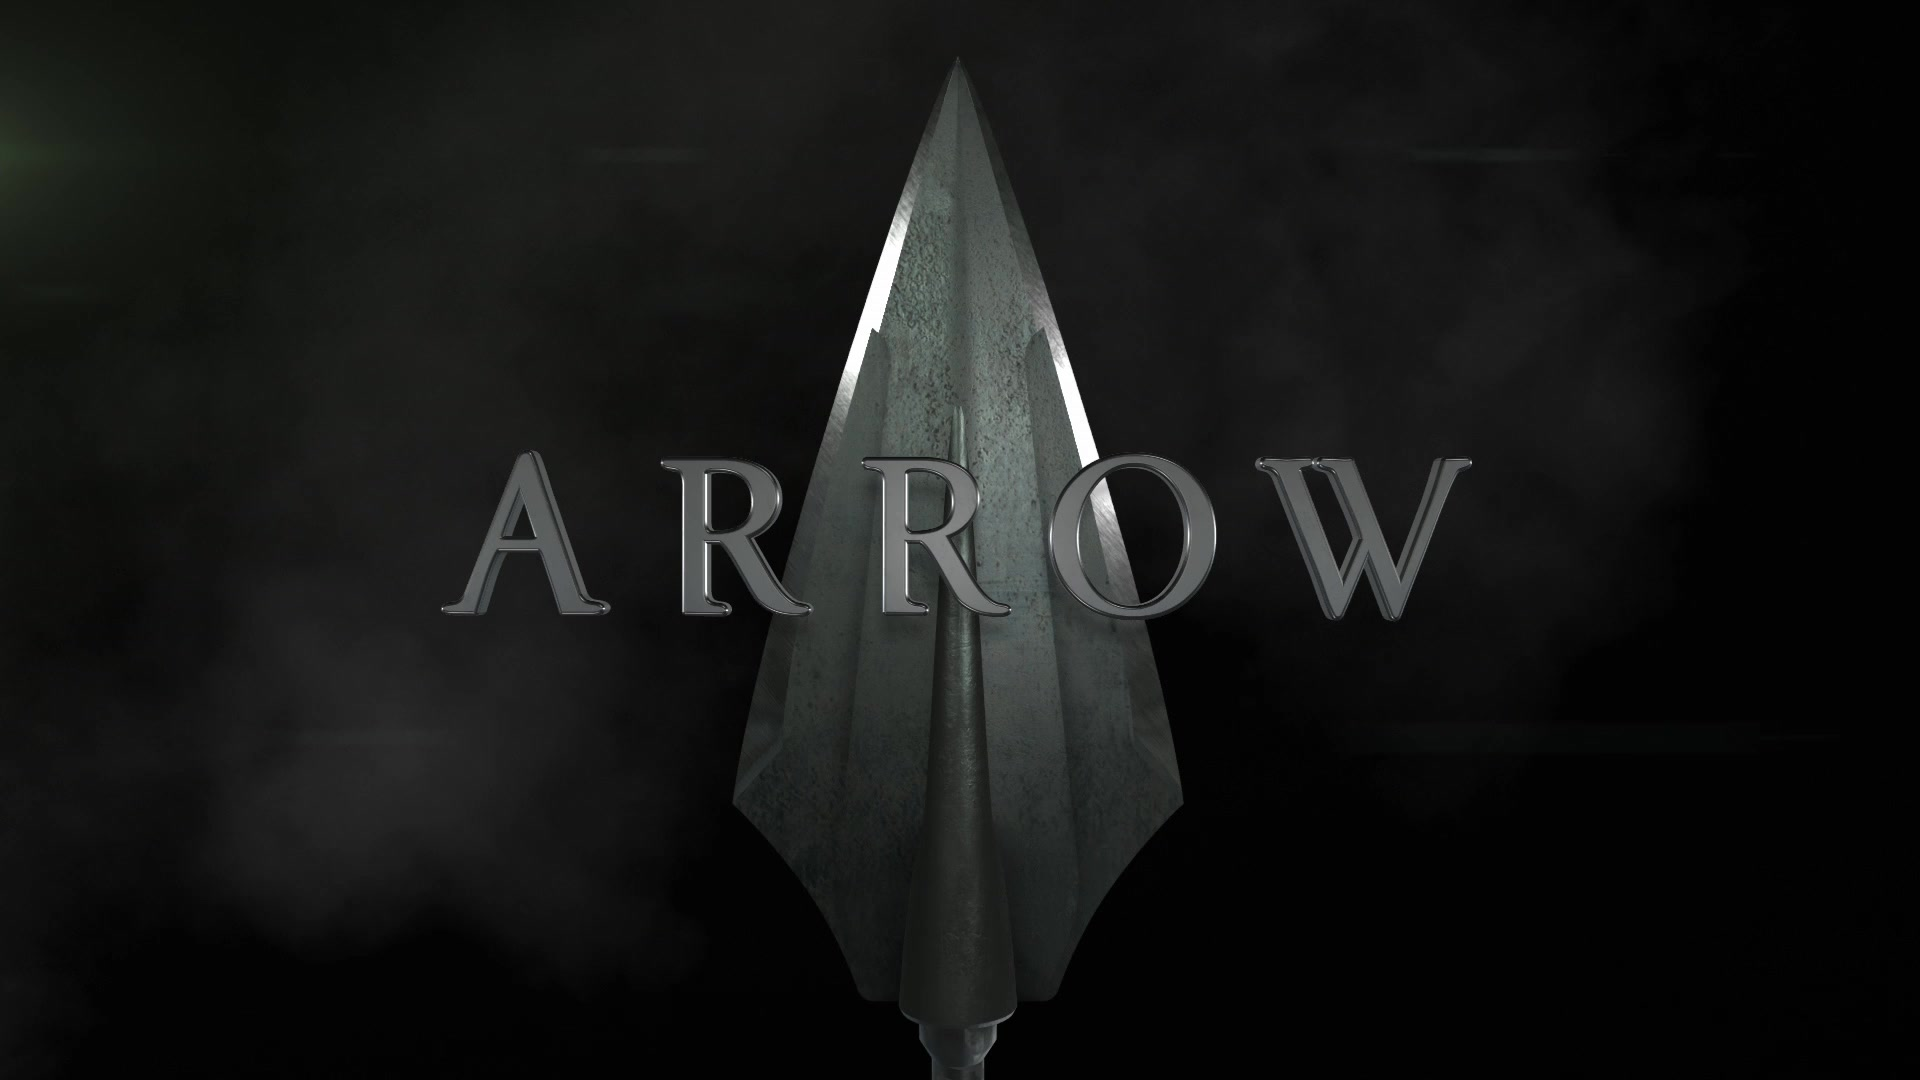 Arrow (TV Series) Episode: Due Process